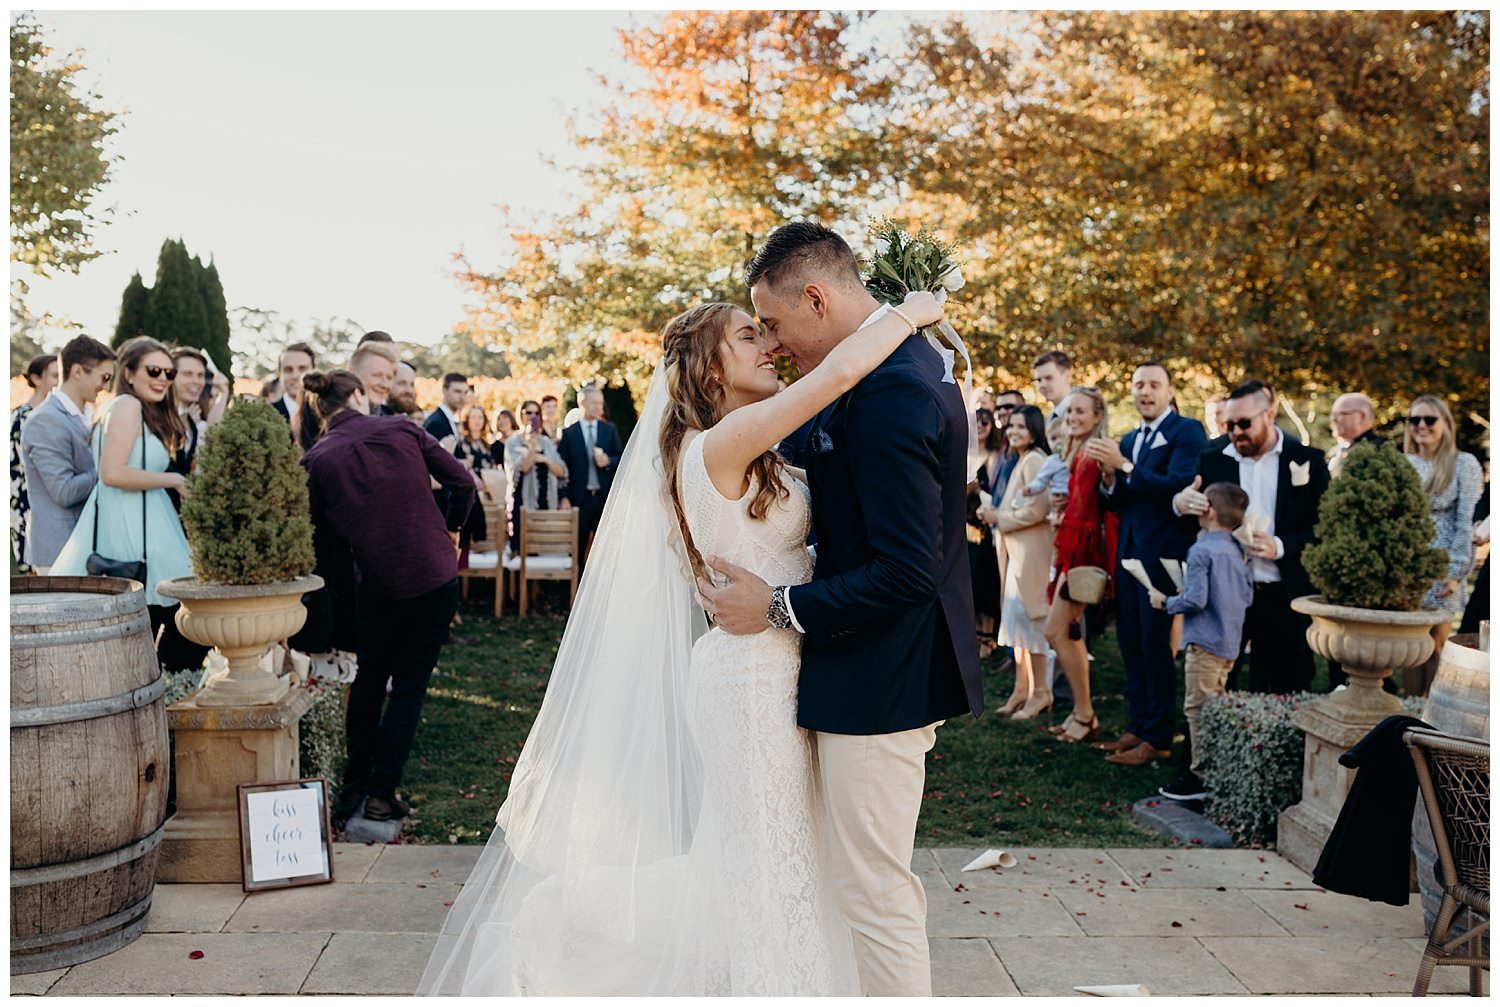 Bowral Southern Highlands Autumn Wedding - Centennial Vineyards